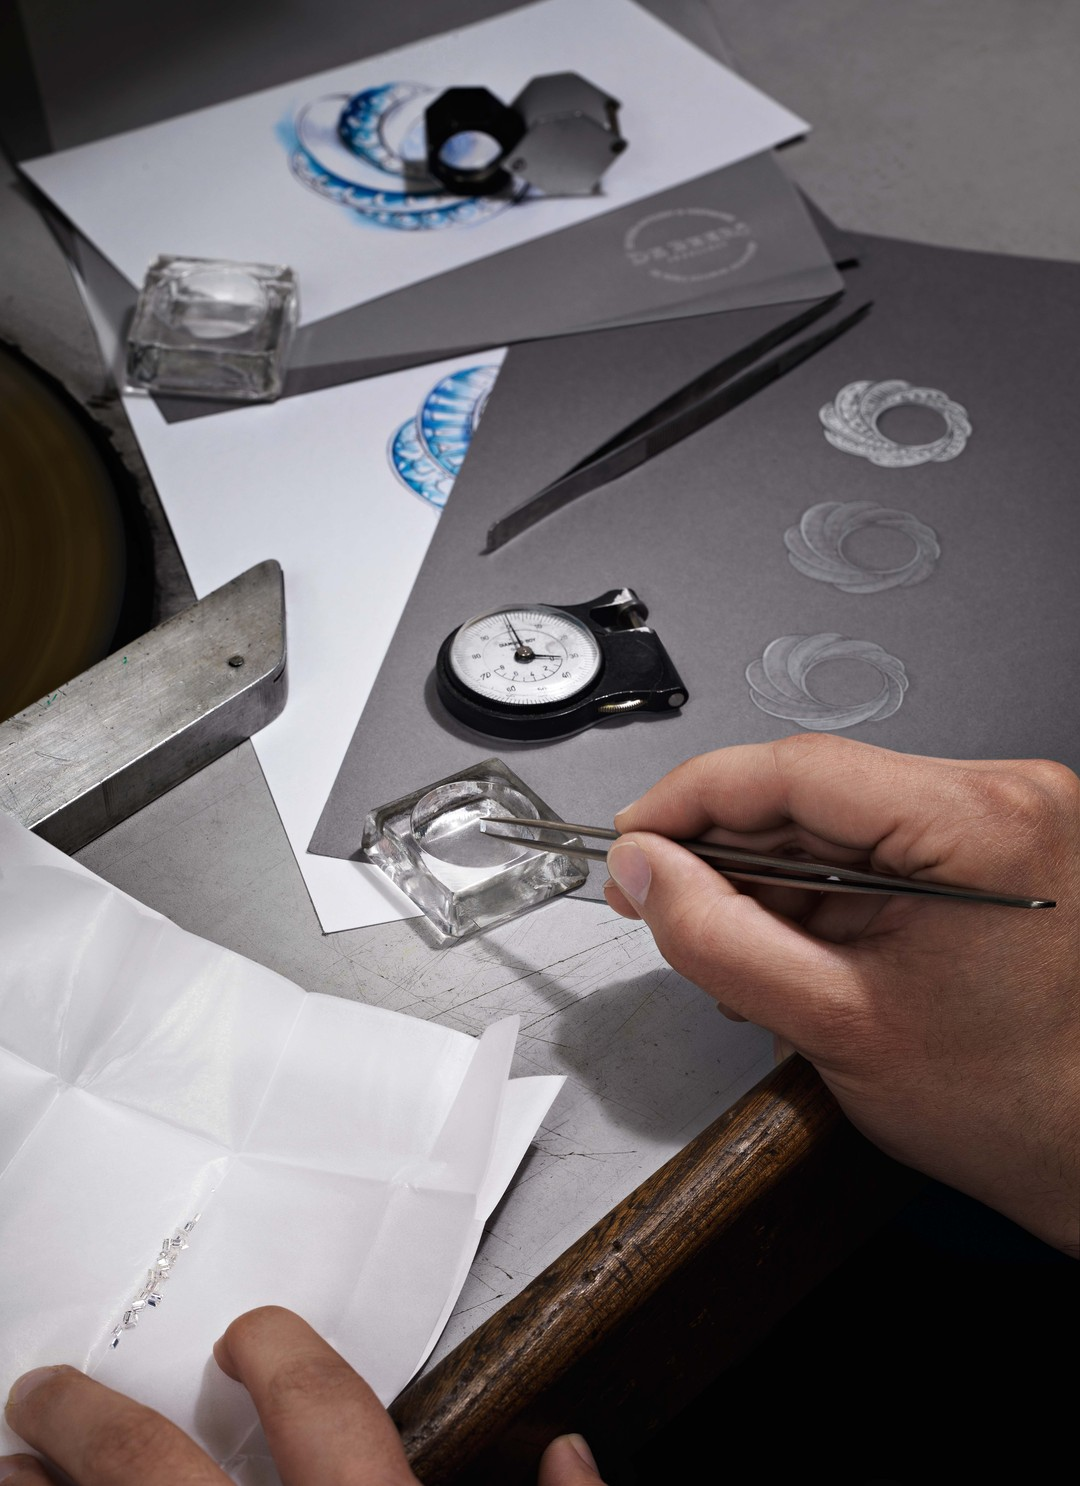 Drawing on more than a century of diamond expertise, each gemstone is selected by hand for De Beers' new Aria watches.